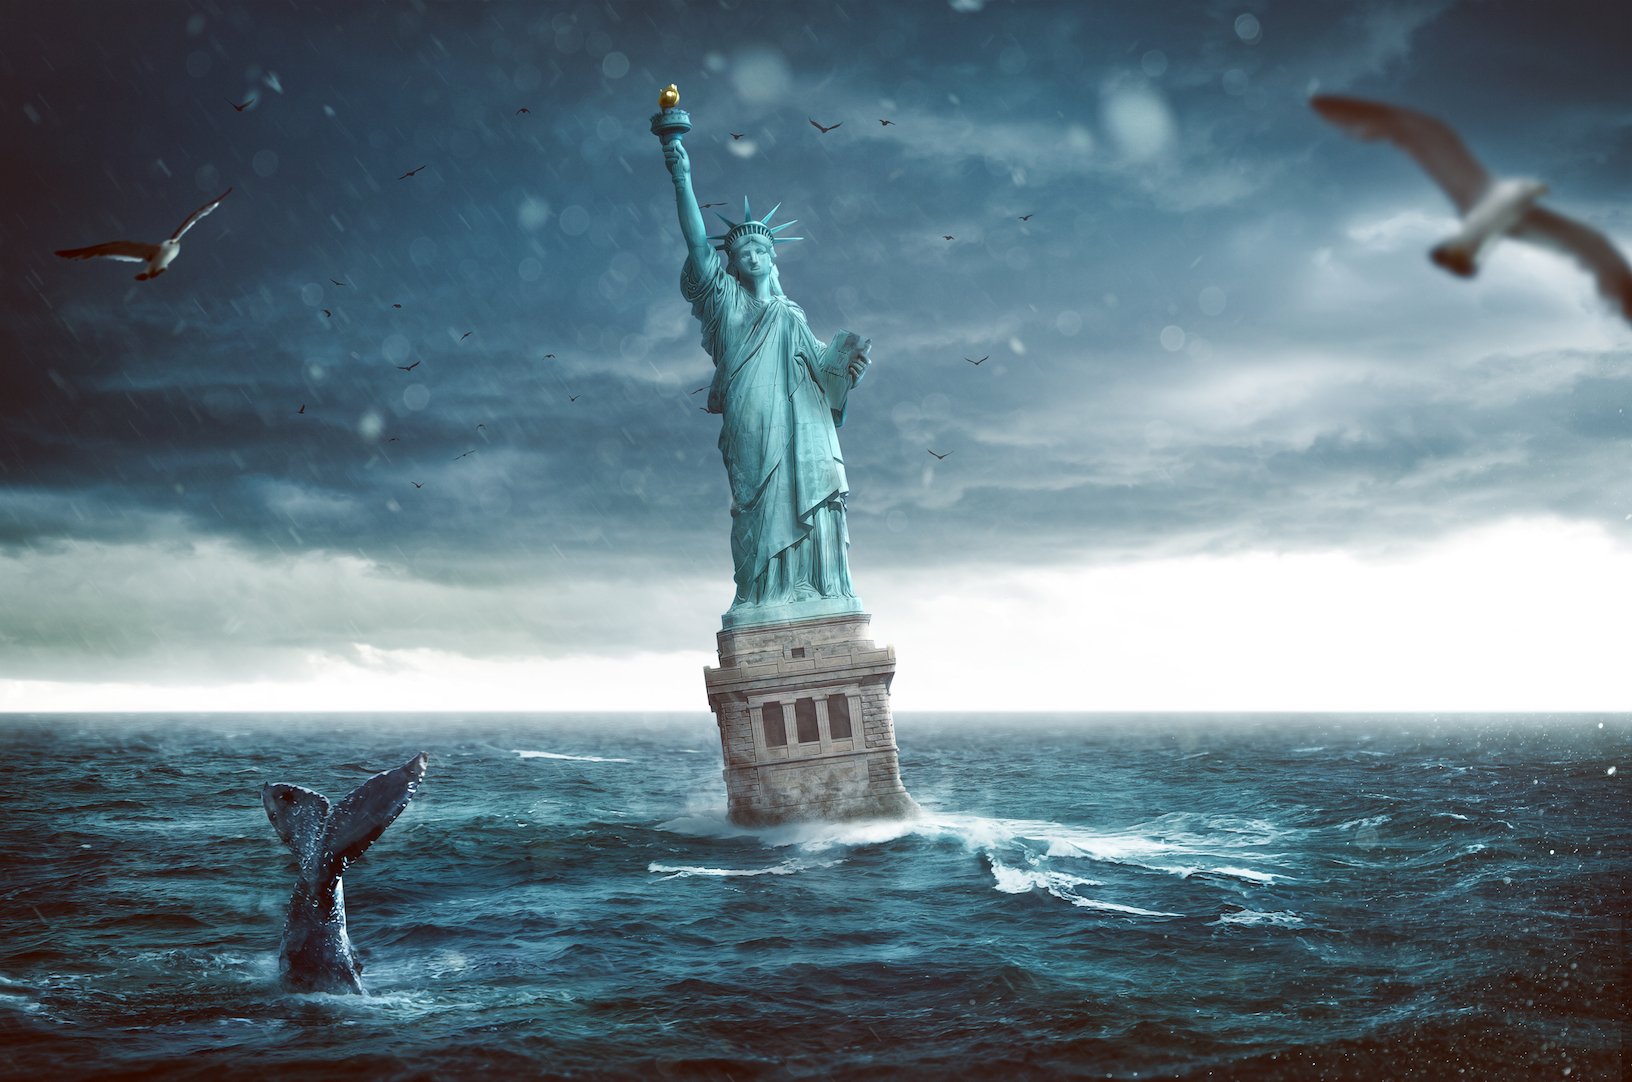 A new study has found that parts of New York City could be submerged beneath 50 feet of floodwaters by the year 2300.A new study has found that parts of New York City could be submerged beneath 50 feet of floodwaters by the year 2300.